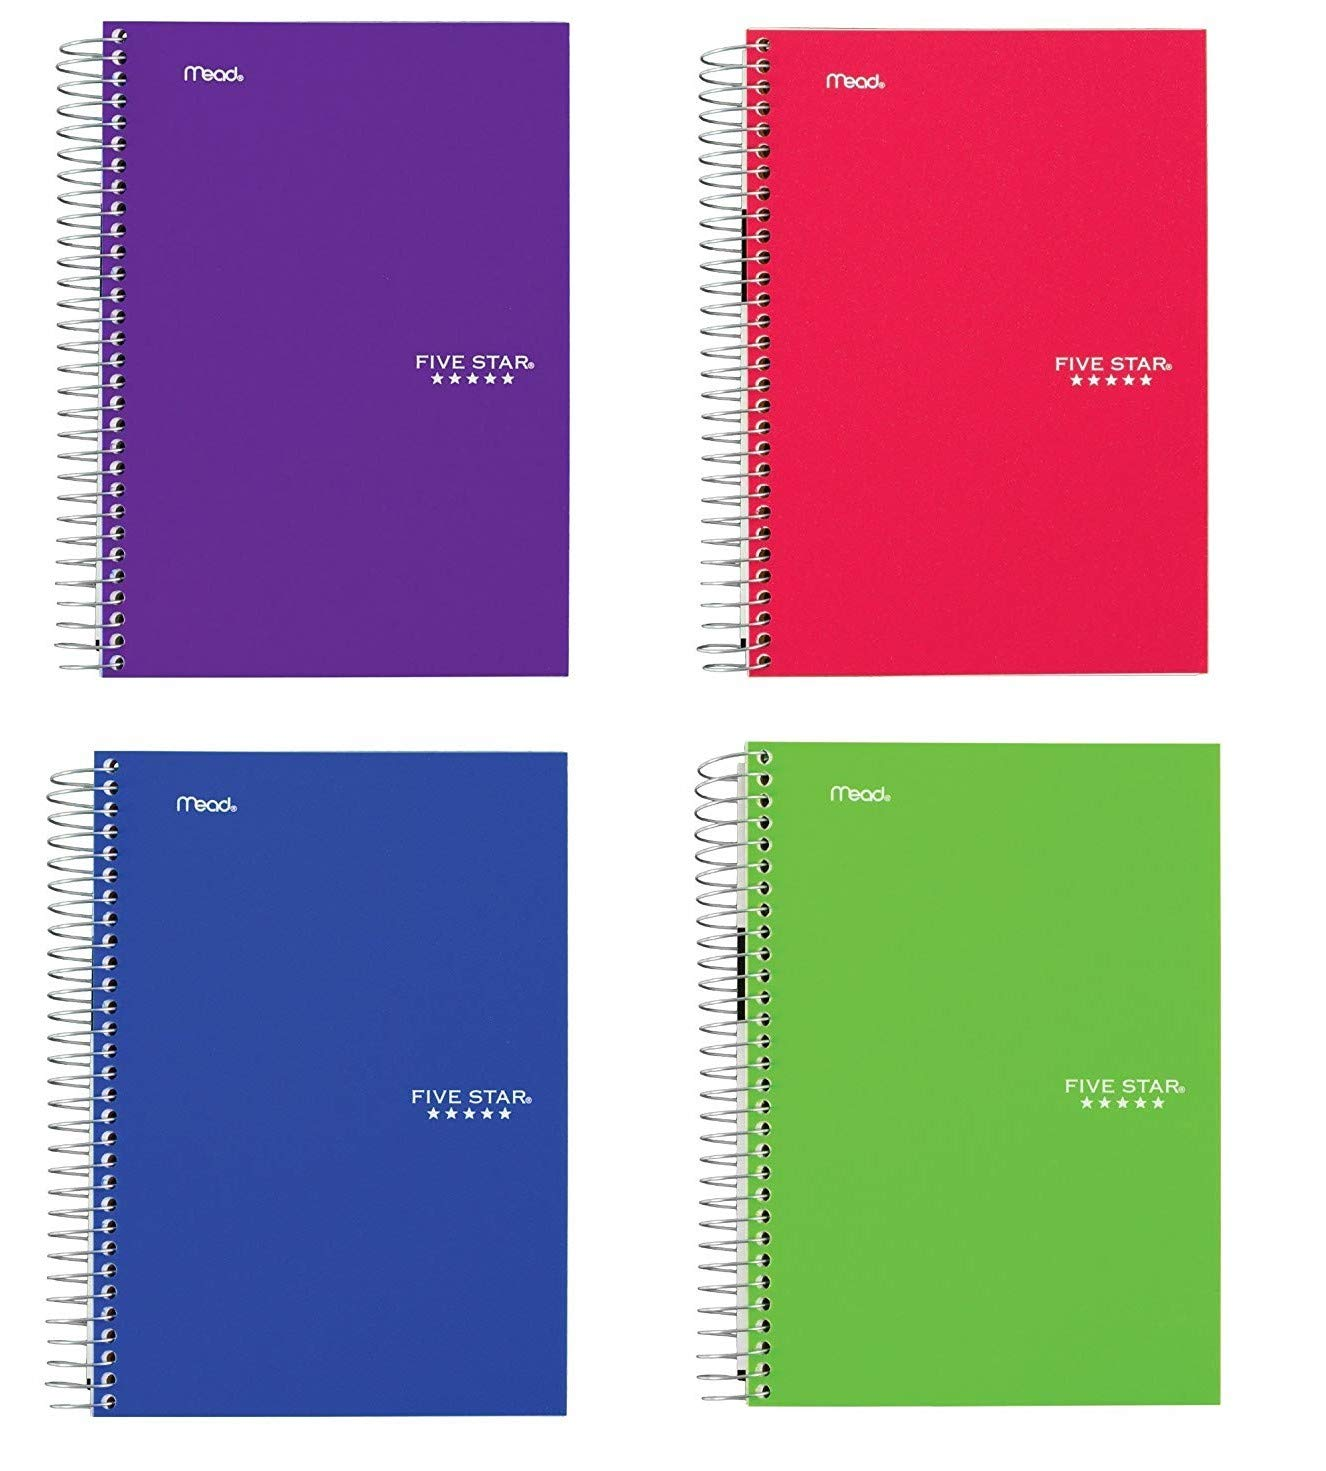 Five Star Spiral Notebooks, 5 Subject, College Ruled Paper, 180 Sheets, 9-1/2'' x 6'', Color Will Vary, 4 Pack (06184)